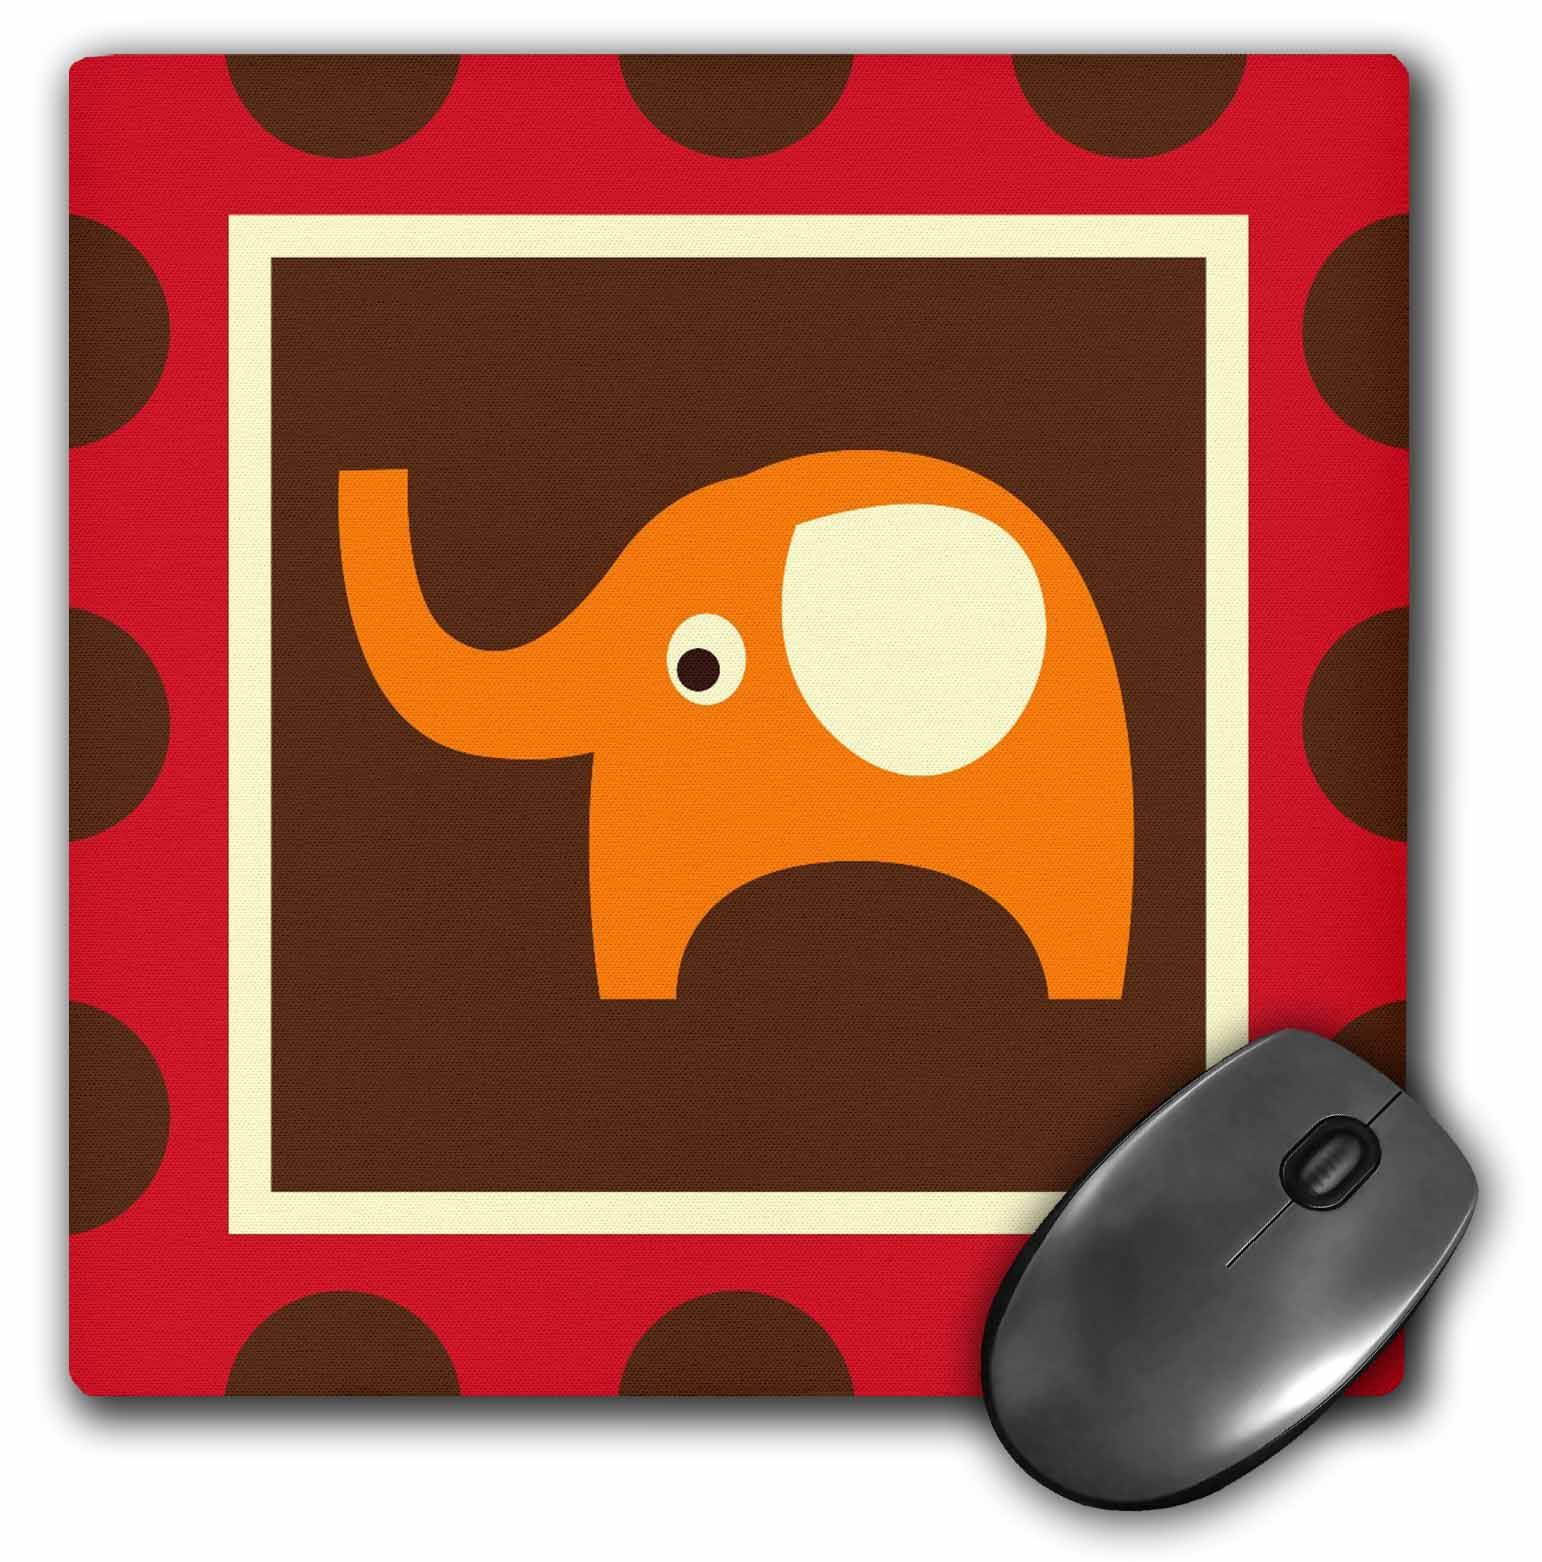 3dRose Cute Orange Elephant - Childrens Art - Adorable Animals, Mouse Pad, 8 by 8 inches